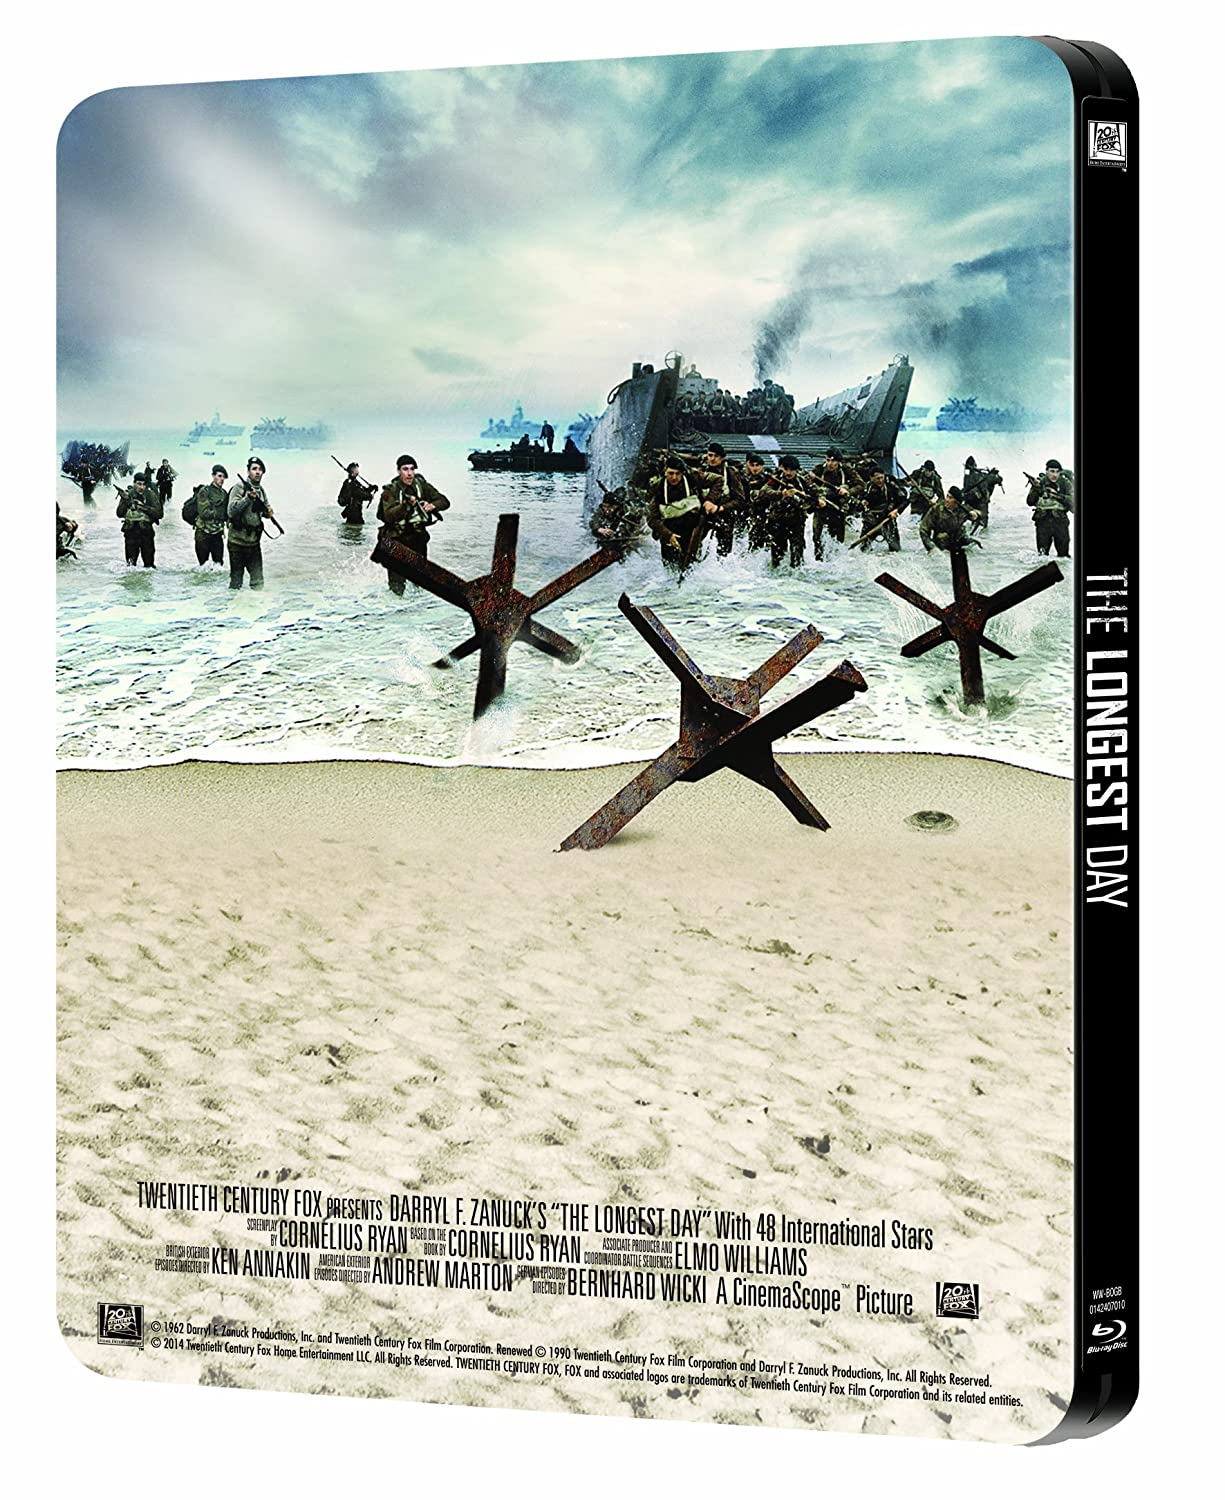 The Longest Day - 1 or 2 discs? - Blu-ray Forum